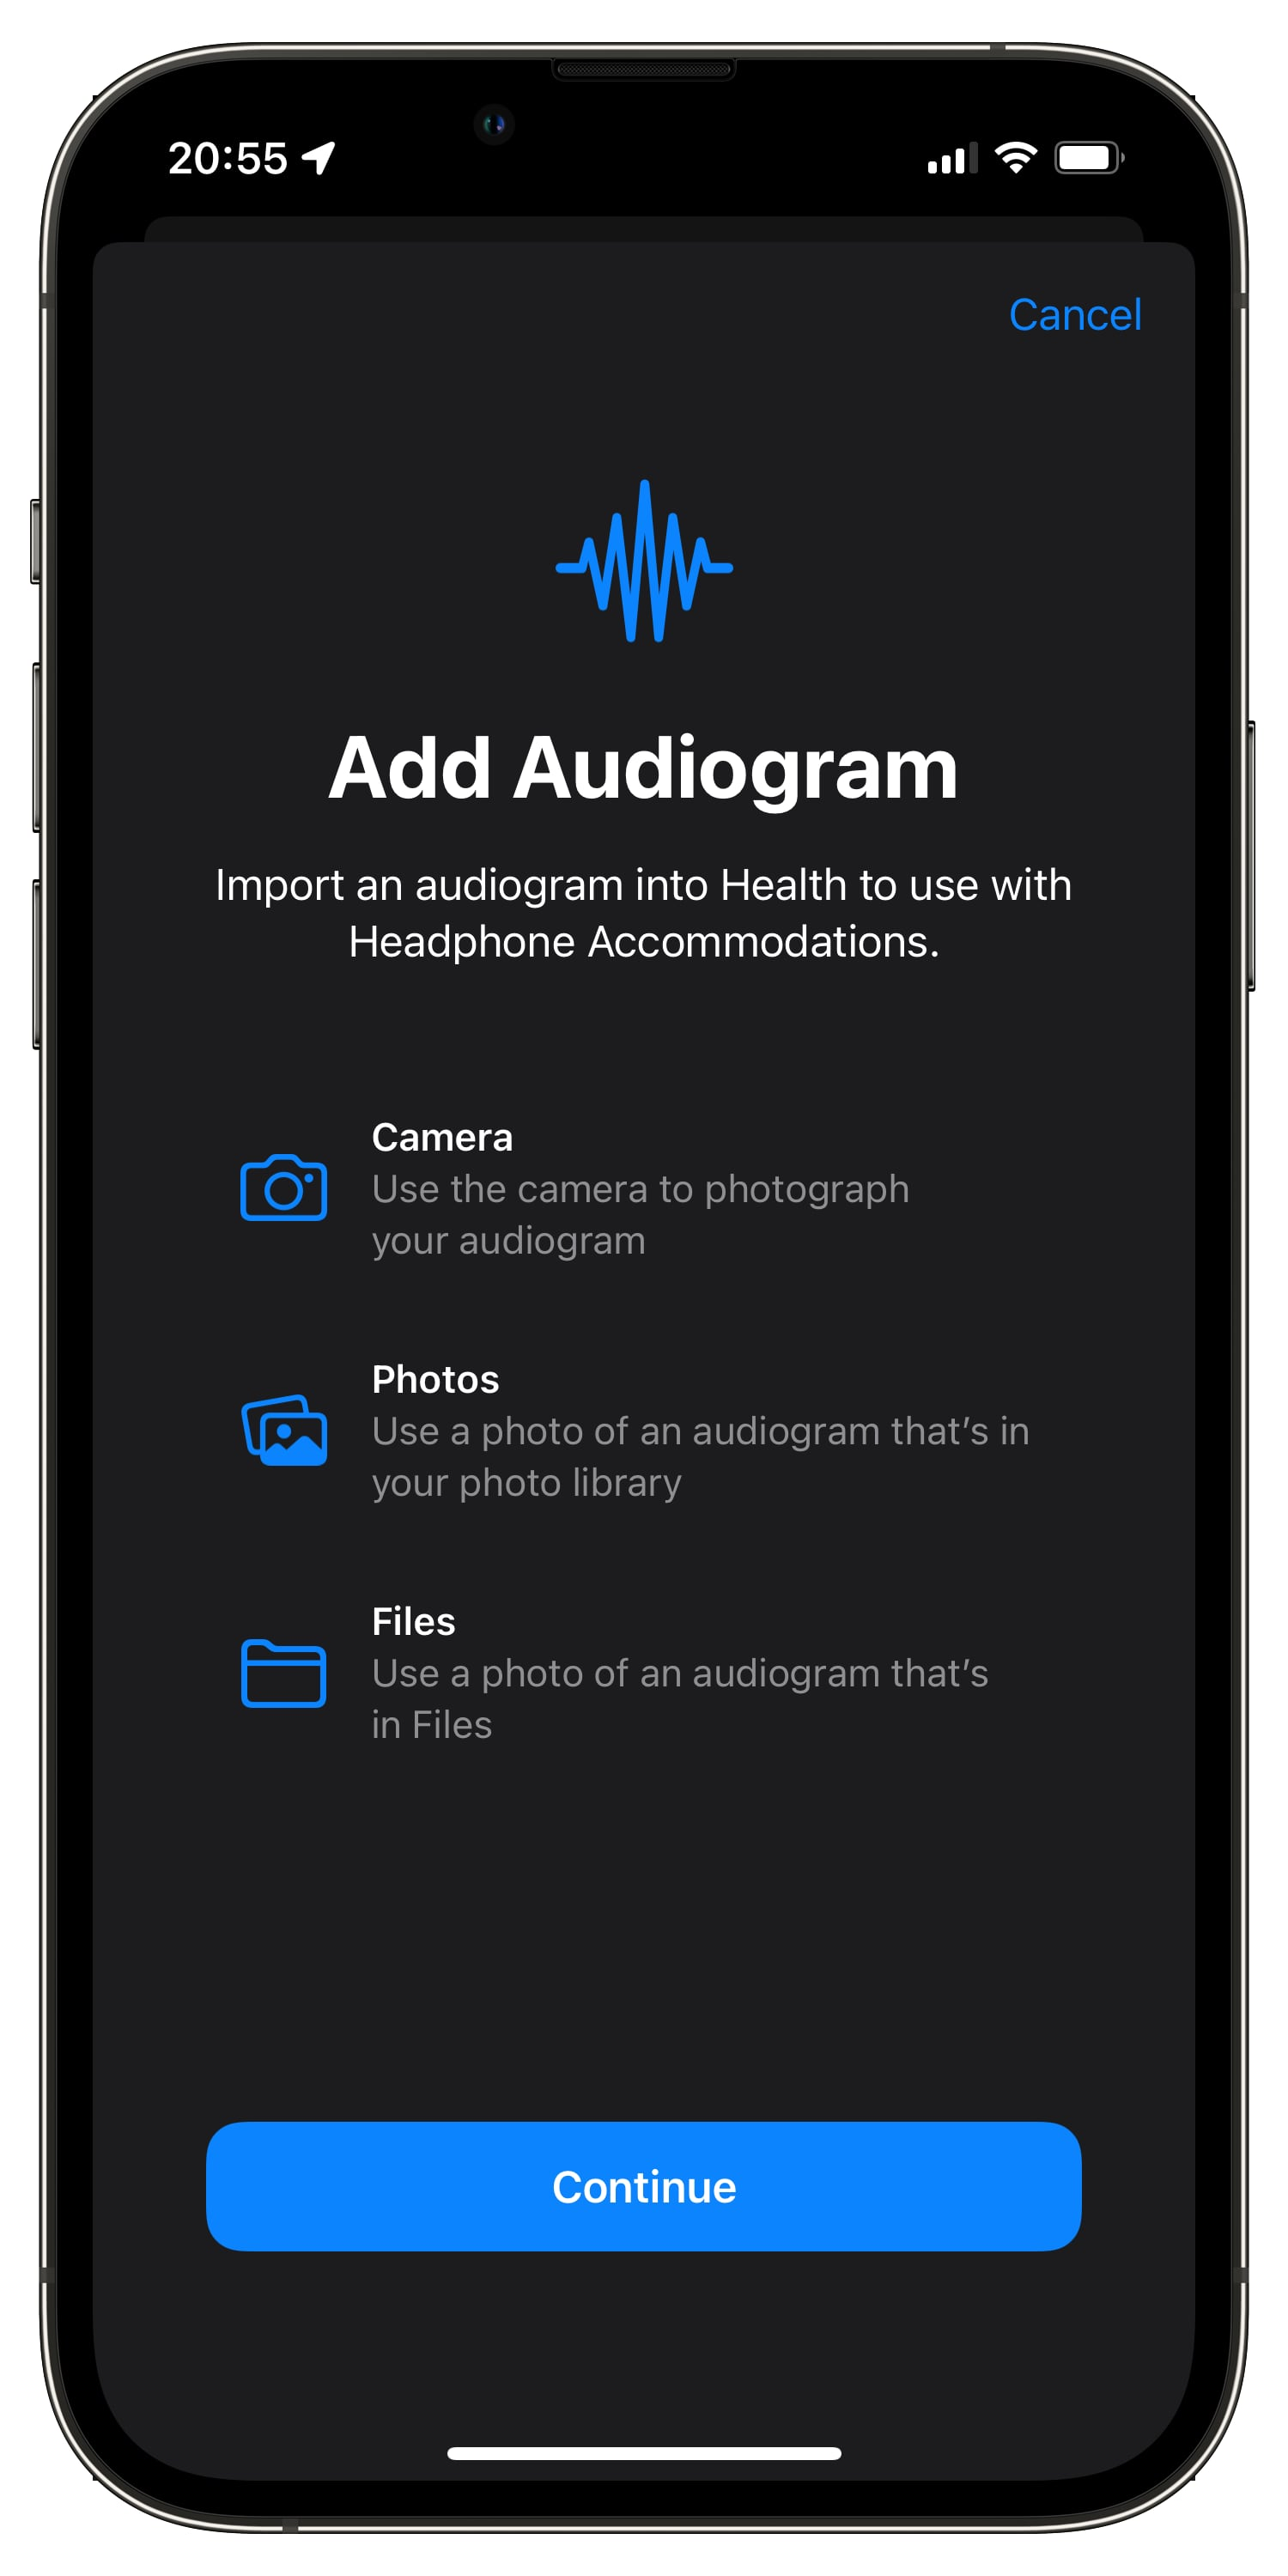 iPhone screenshot showing uploading audiogram to iPhone on iOS 15 with three options available: the Camera app, the Photos app and the Files app